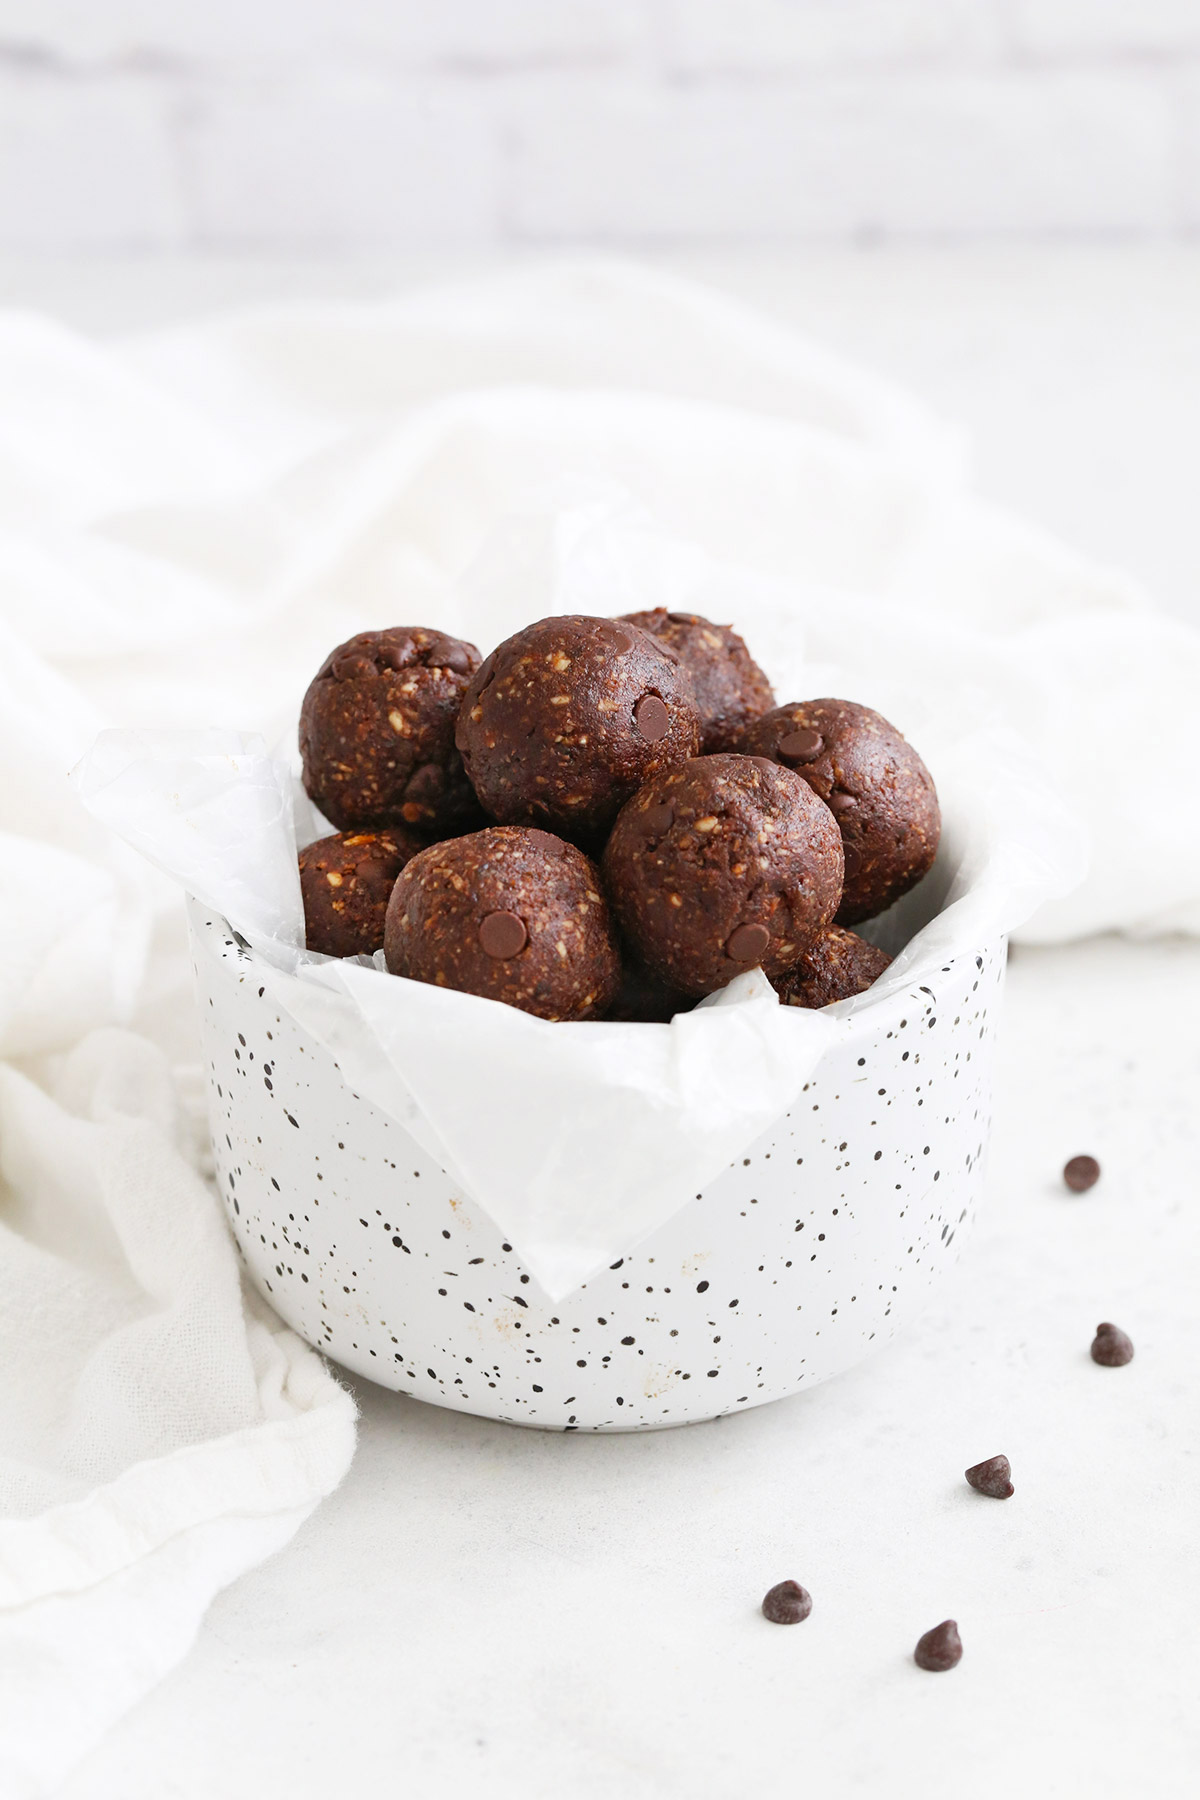 Front view of almond joy energy bites in a speckled white bowl.